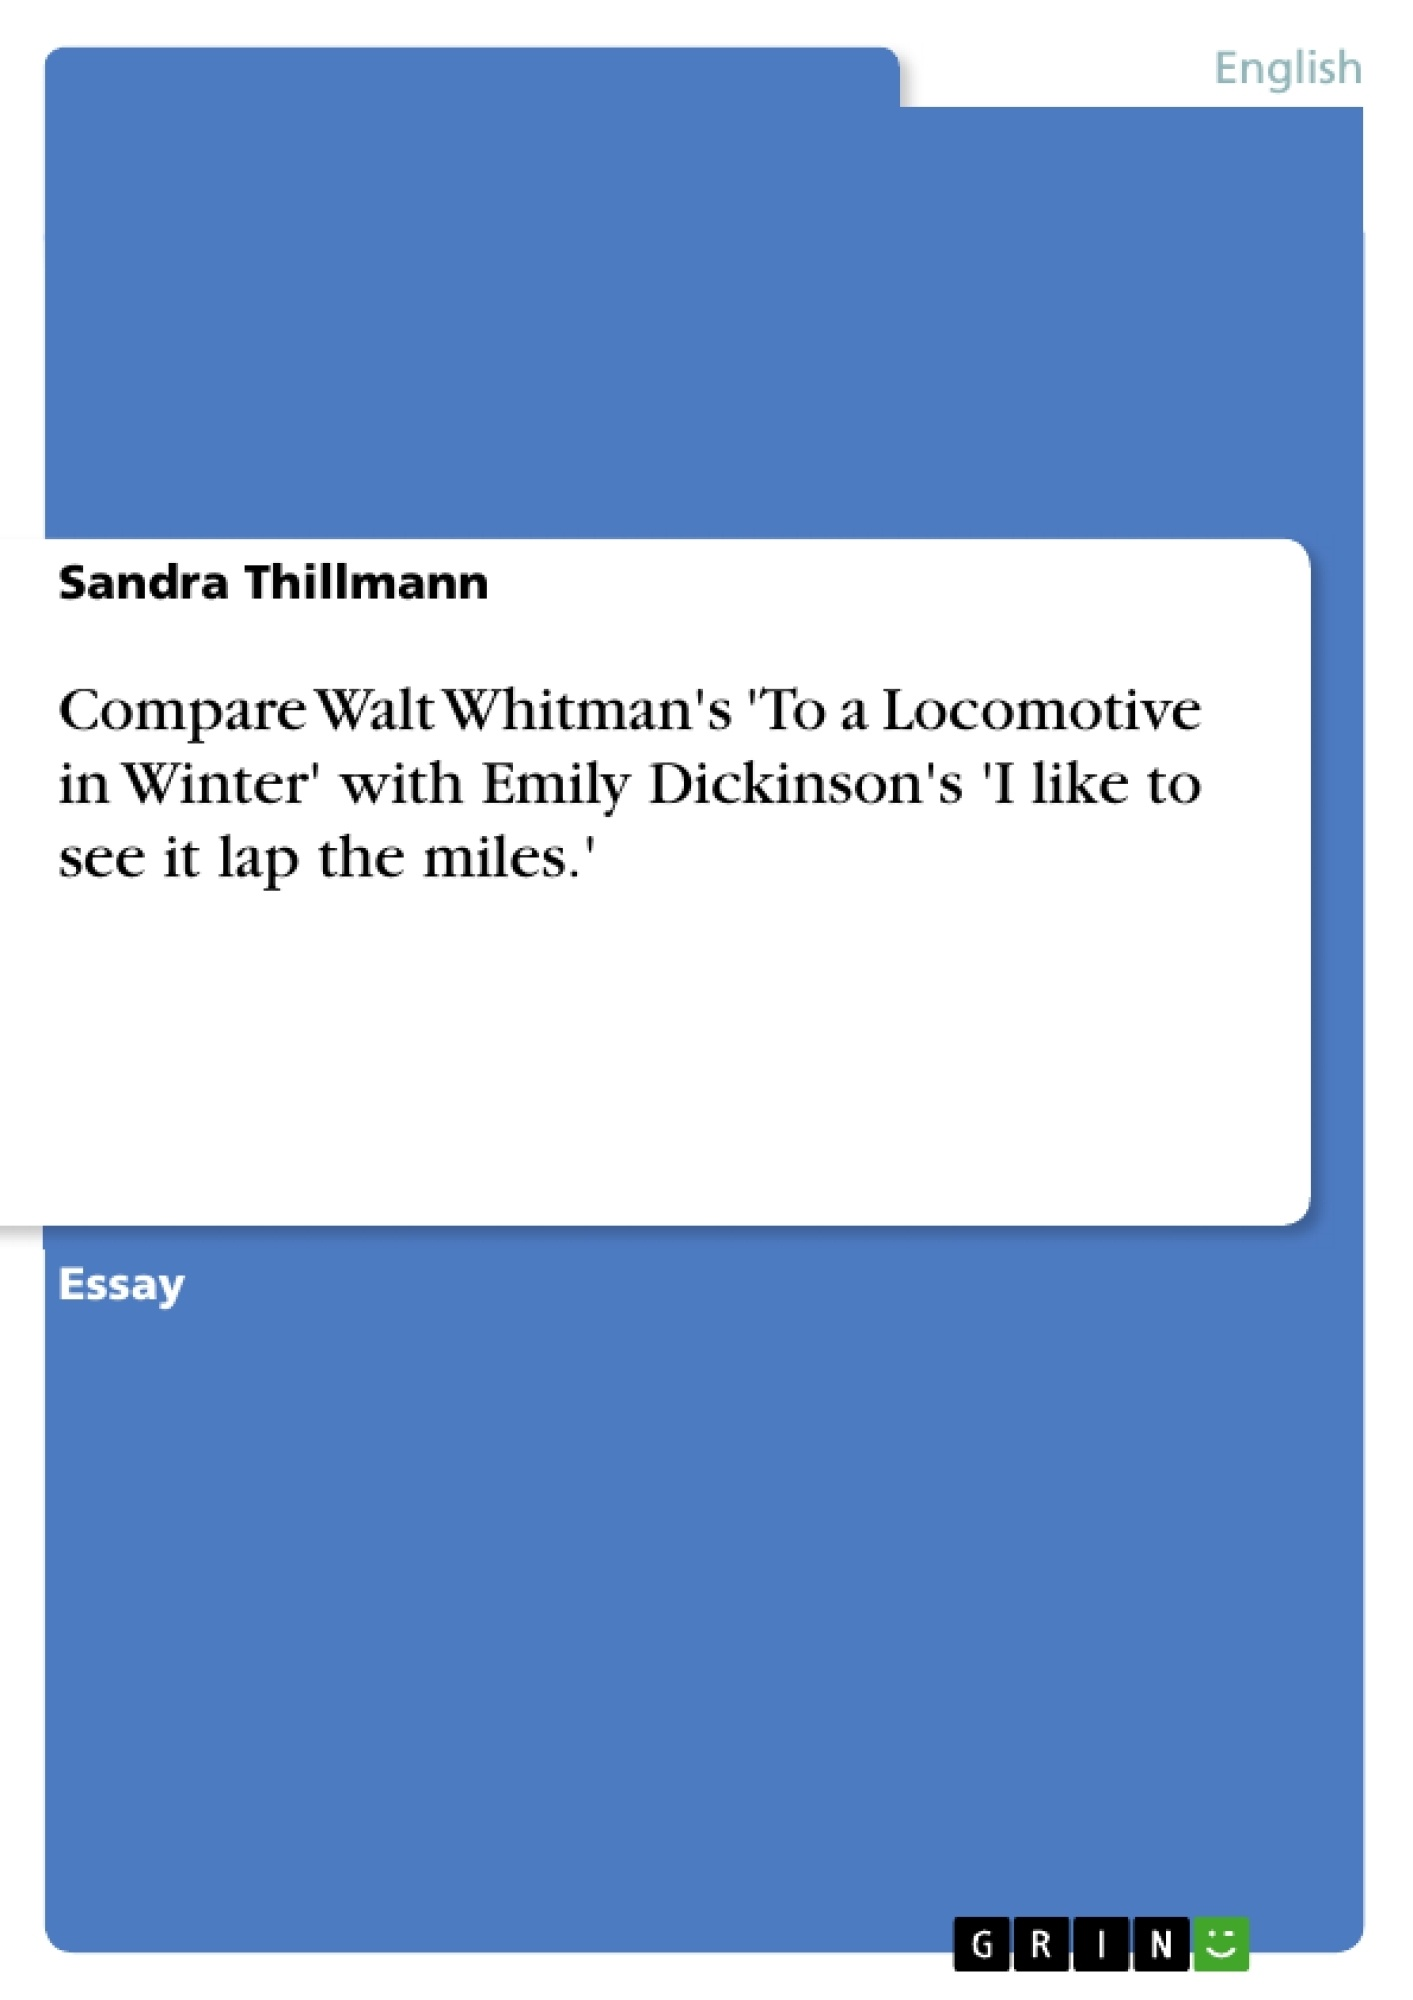 Title: Compare Walt Whitman's 'To a Locomotive in Winter' with Emily Dickinson's 'I like to see it lap the miles.'